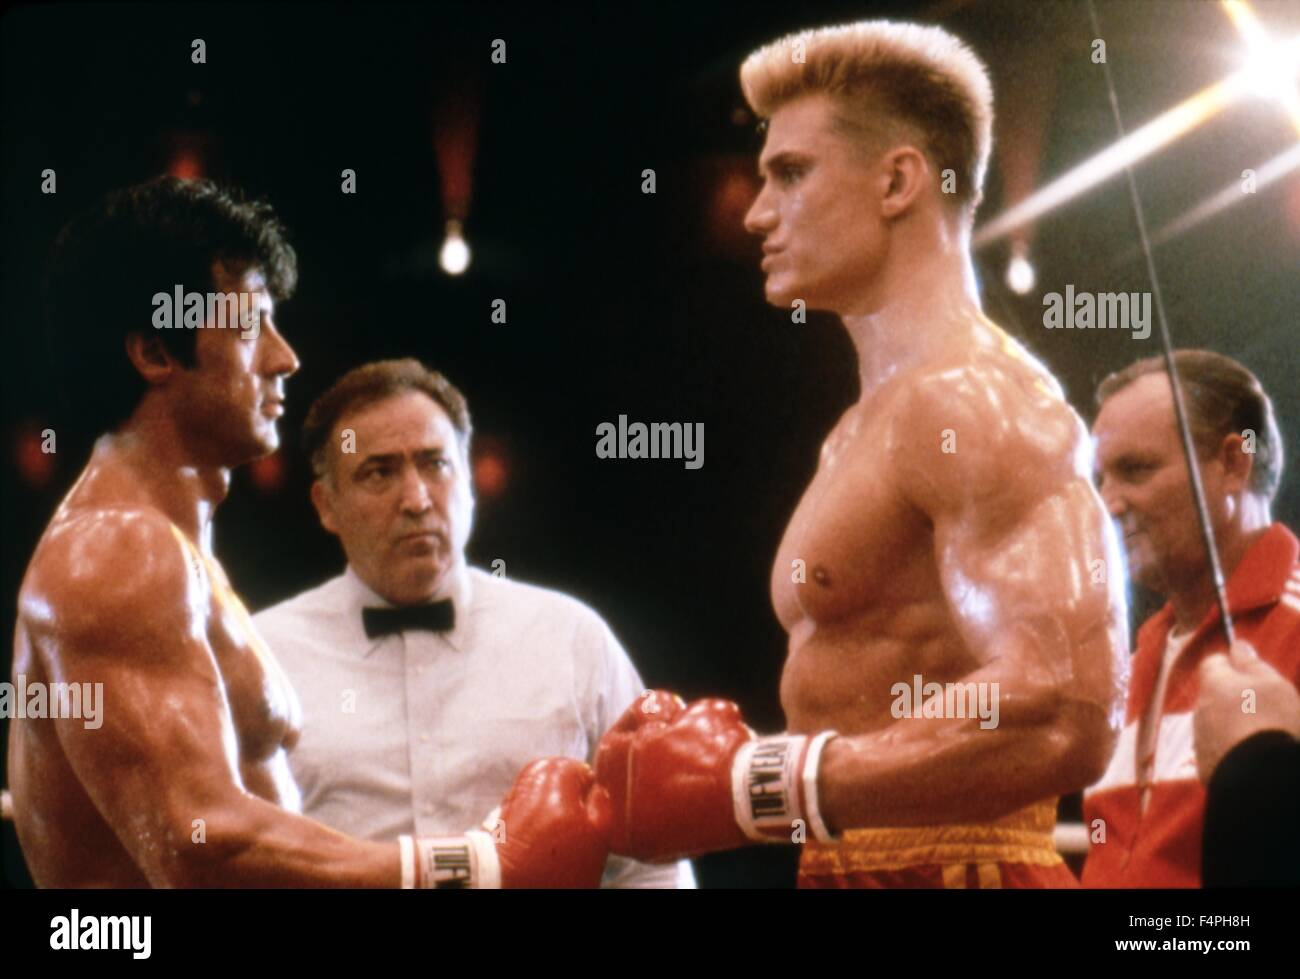 Sylvester Stallone and dolph Lundgren / Rocky IV / 1985 directed by Sylvester Stallone - Stock Image